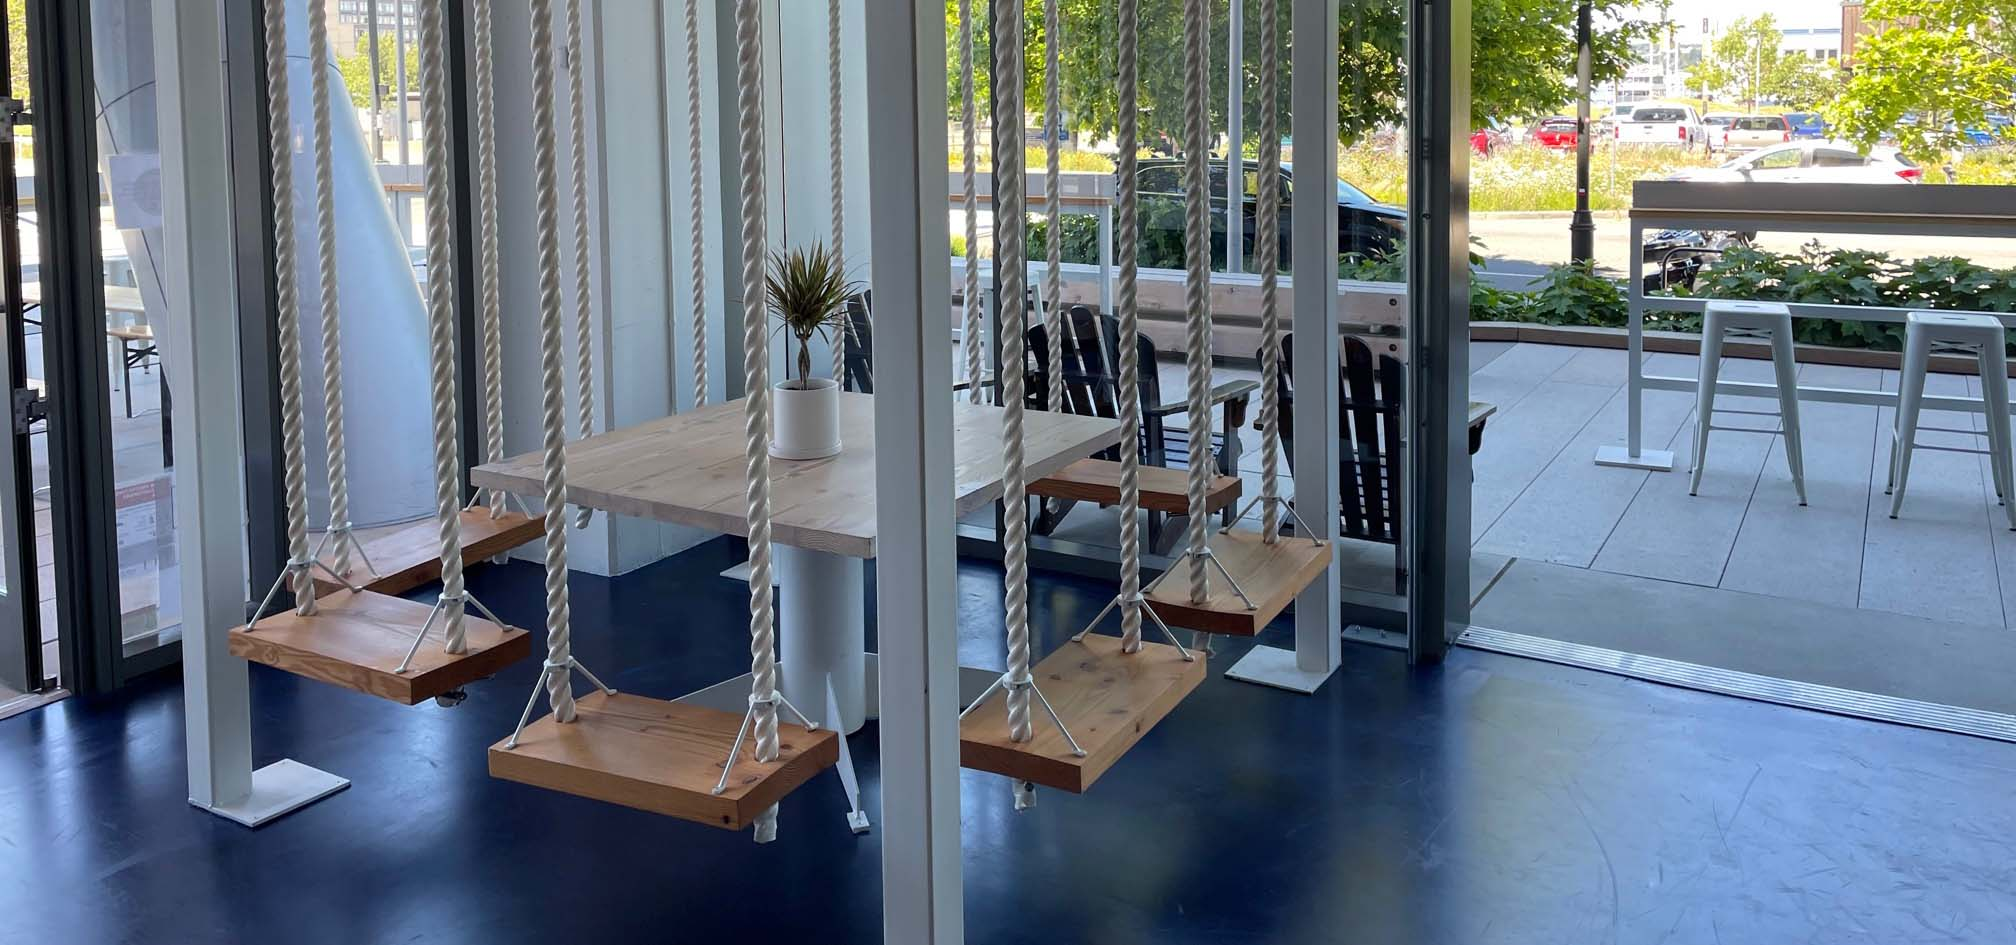 Treehouse swings inside a restaurant for fun patron seating.